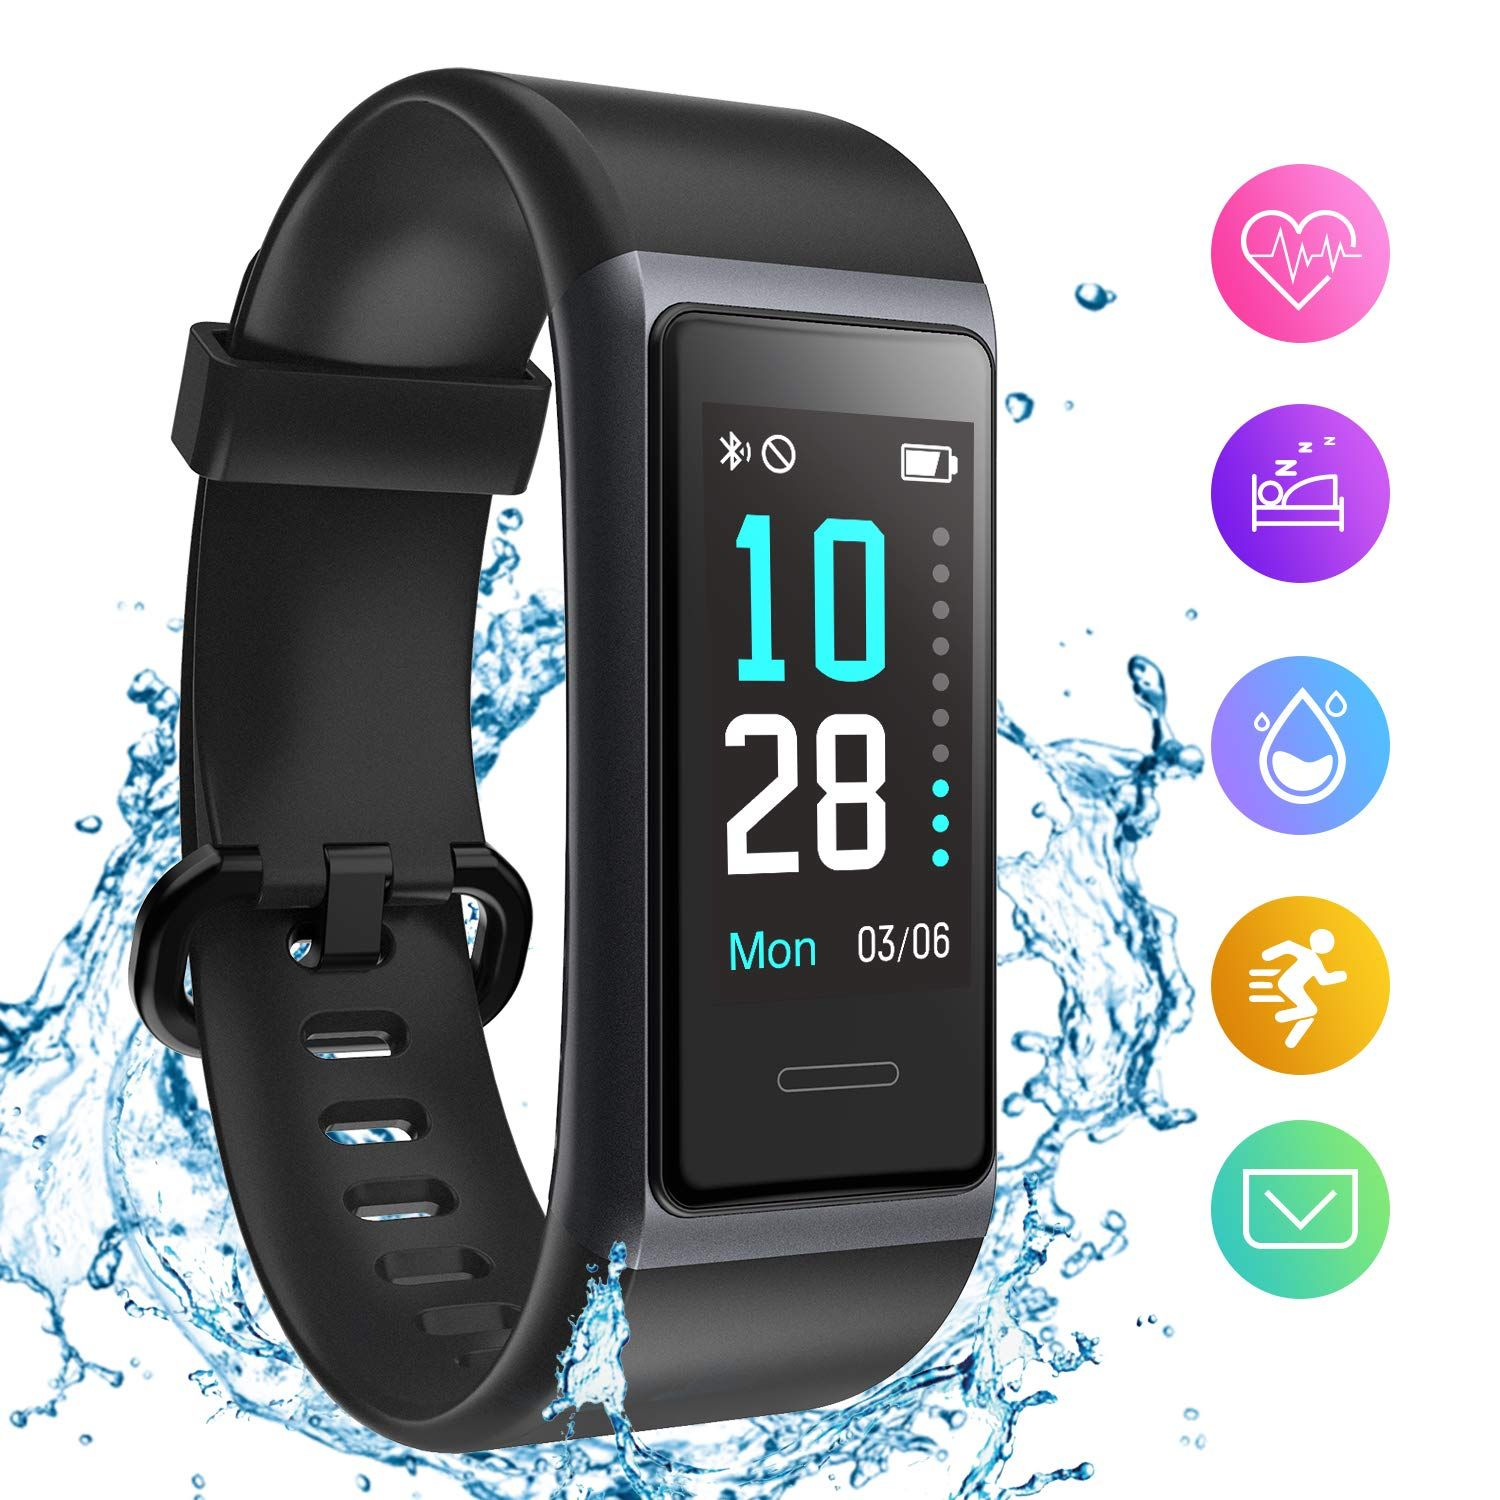 【Smart Activity Tracker】HolyHigh 153 fitness tracker can